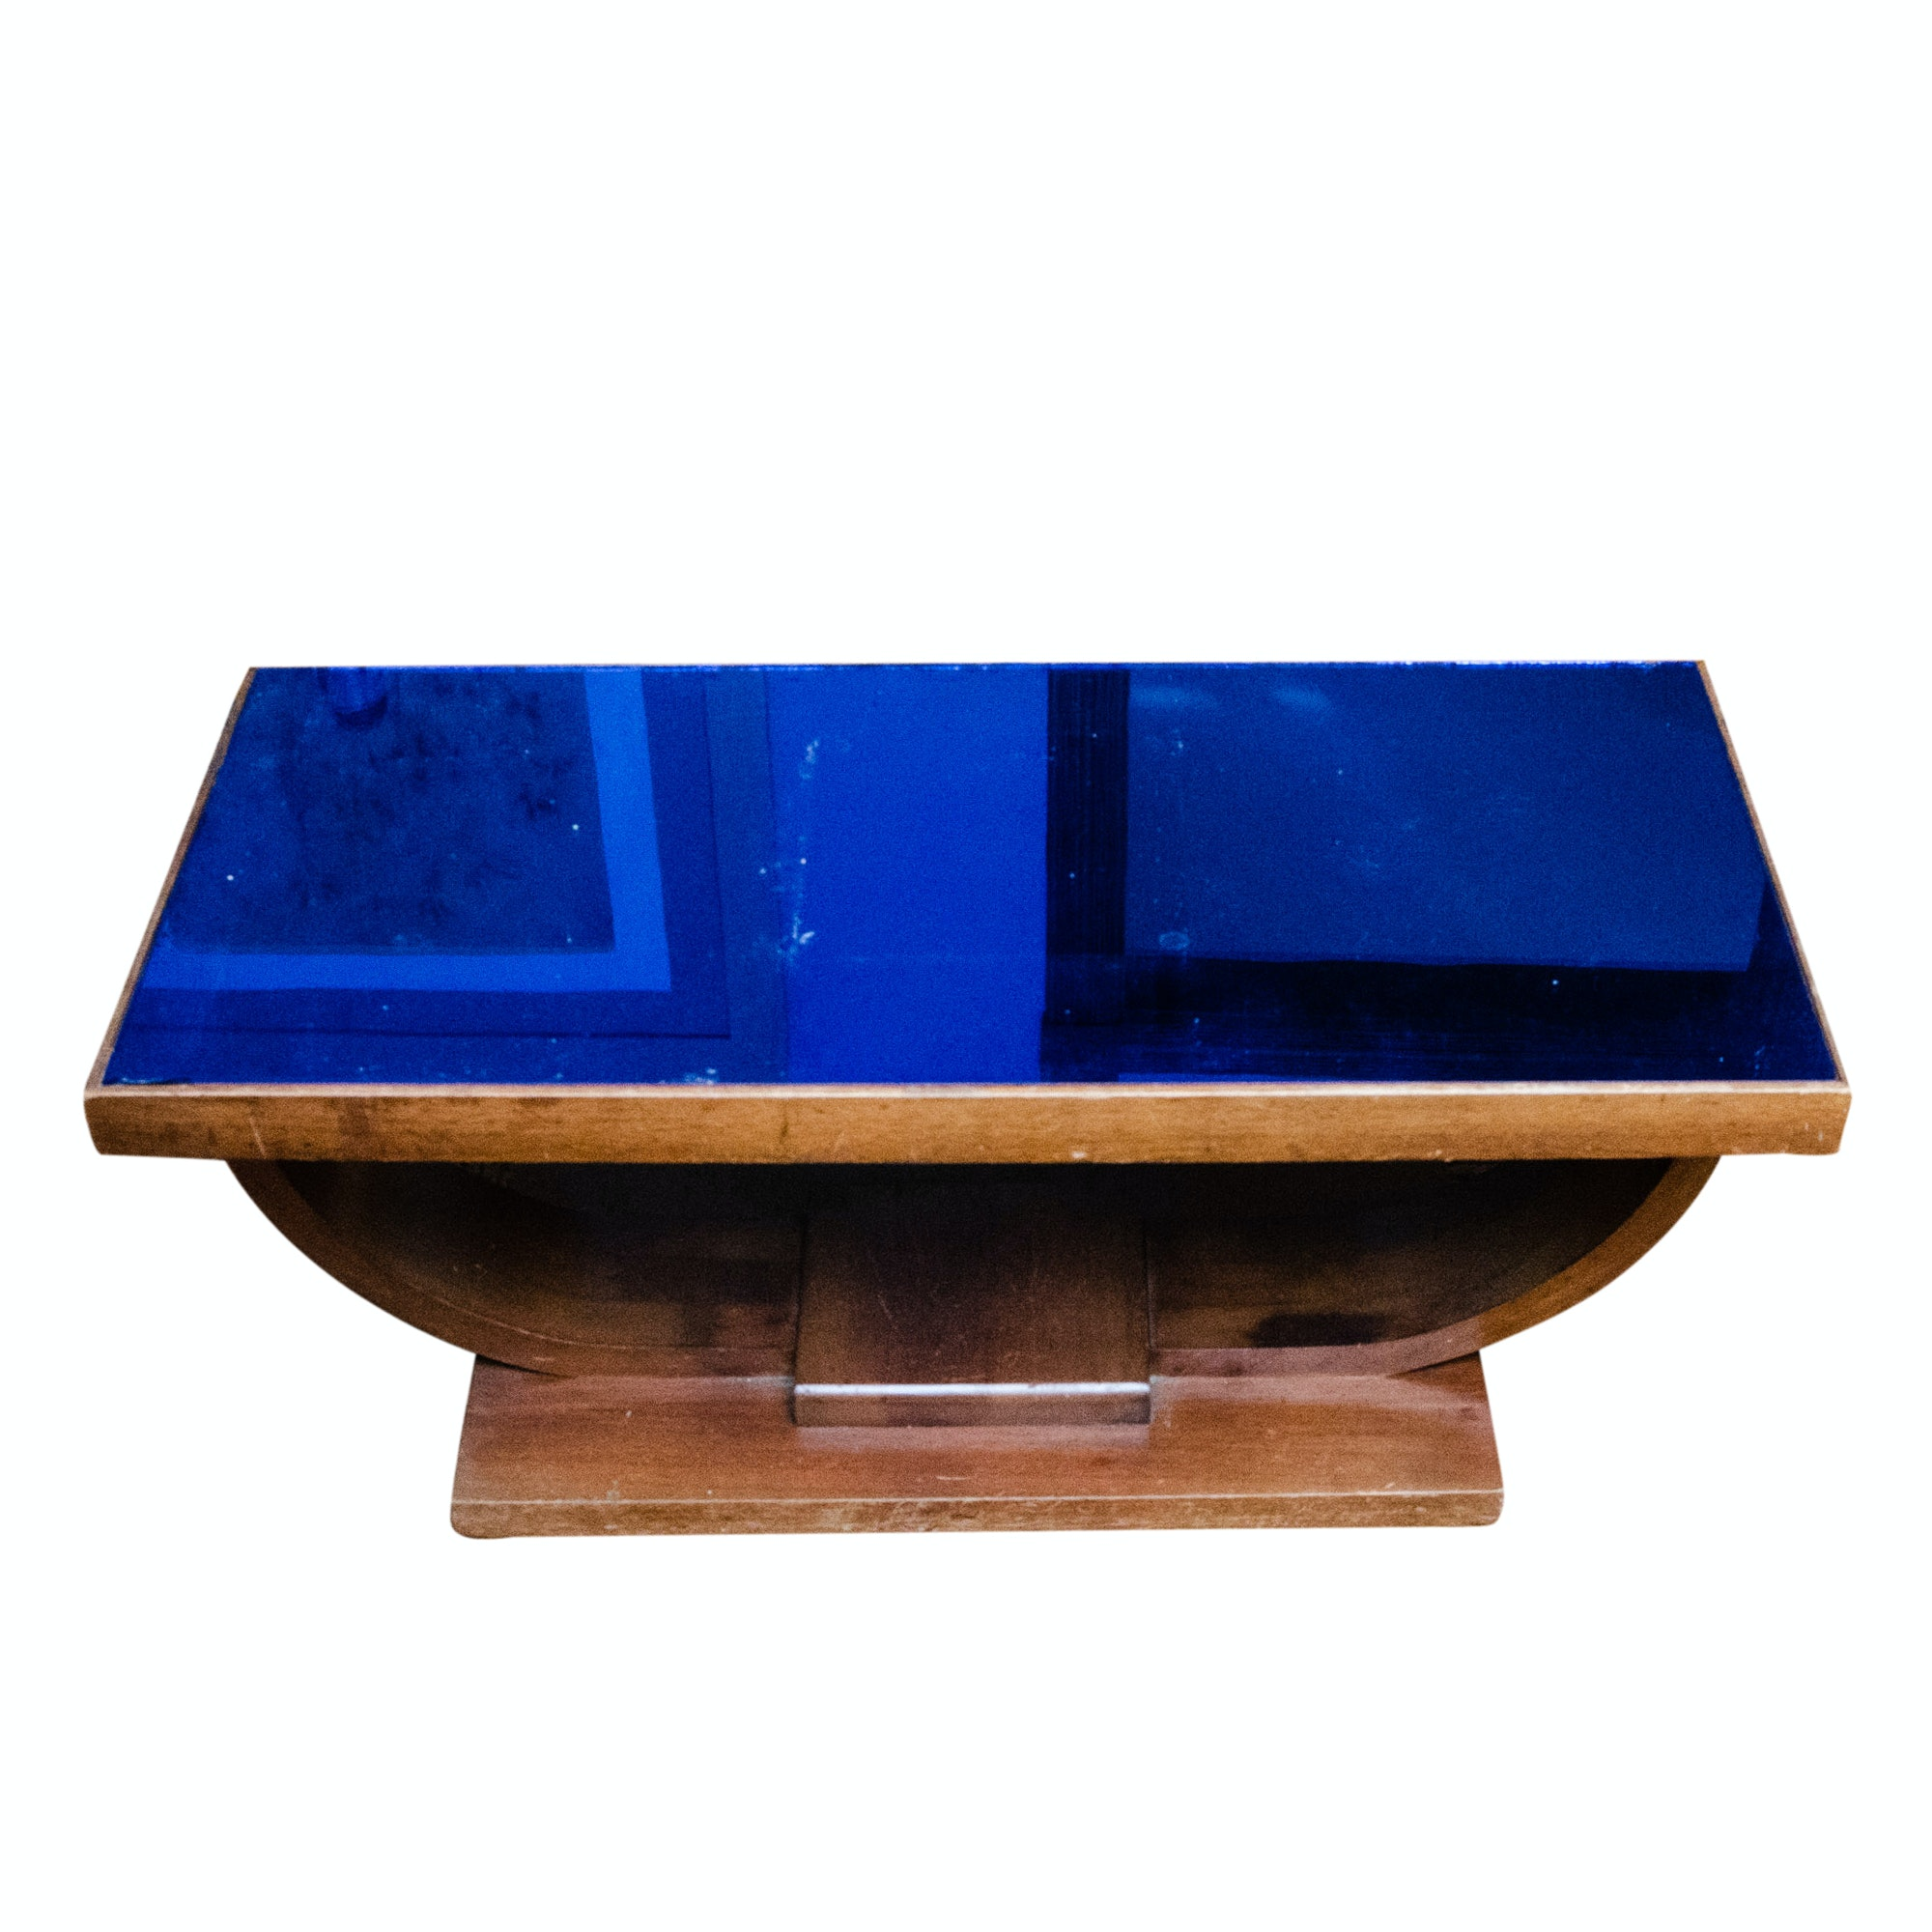 Art Deco Style Glass and Wood Coffee Table by Williamsport